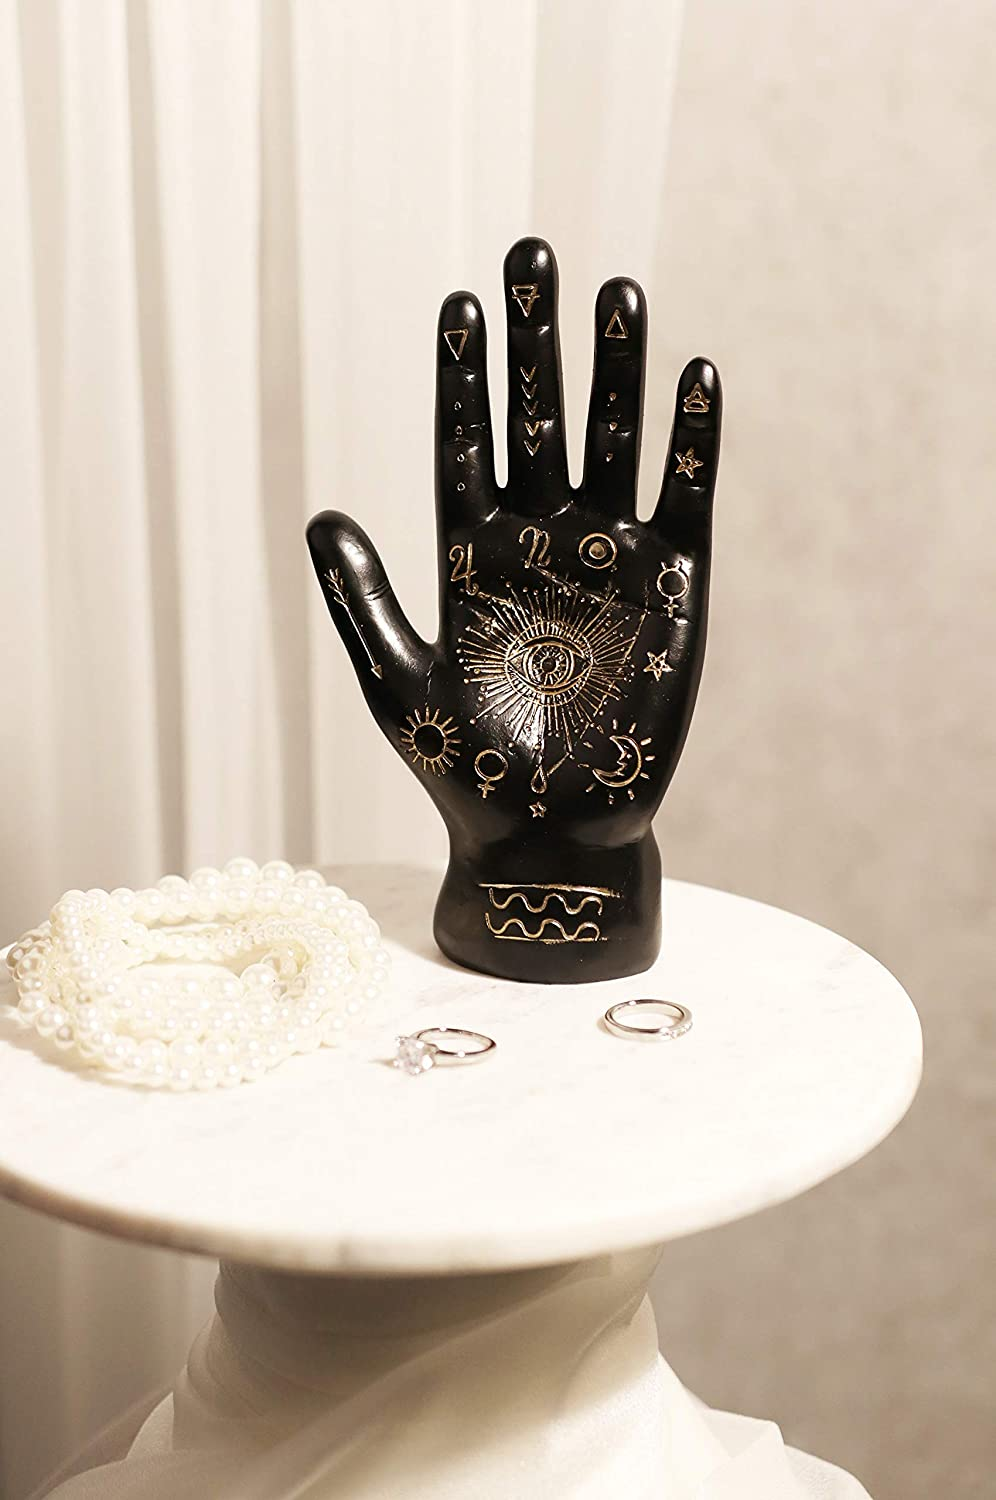 Ebros Gift Ancient Mystical Psychic Fortune Teller Chirology Palmistry Hand Palm with Lines and Symbols Figurine Decor Witchcraft Spiritual Divinity Statue for Palmists Readers (Black)